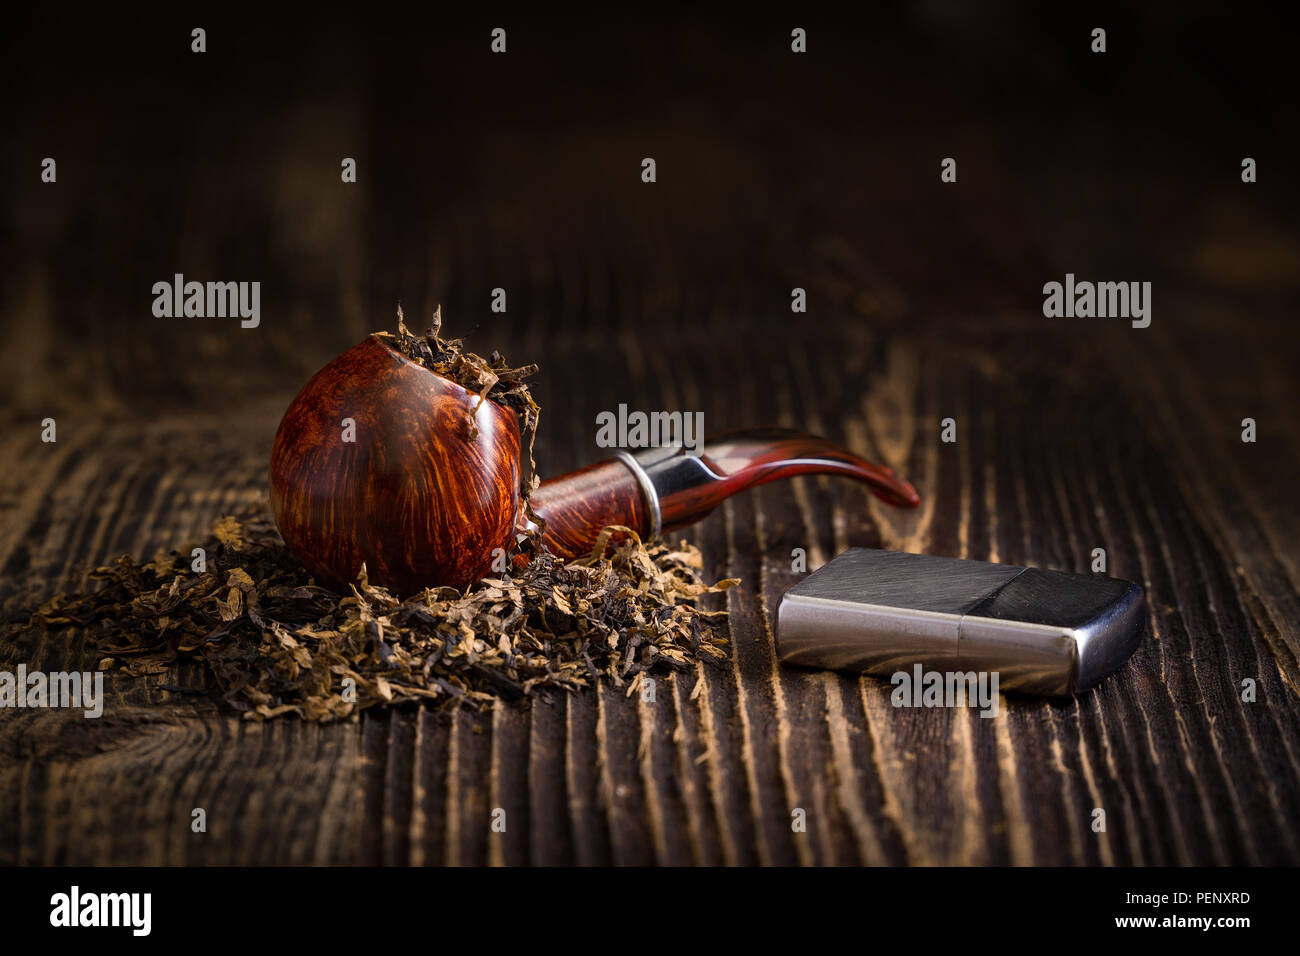 Smoking pipe with tobacco leaves on a rustic wooden table - Stock Image